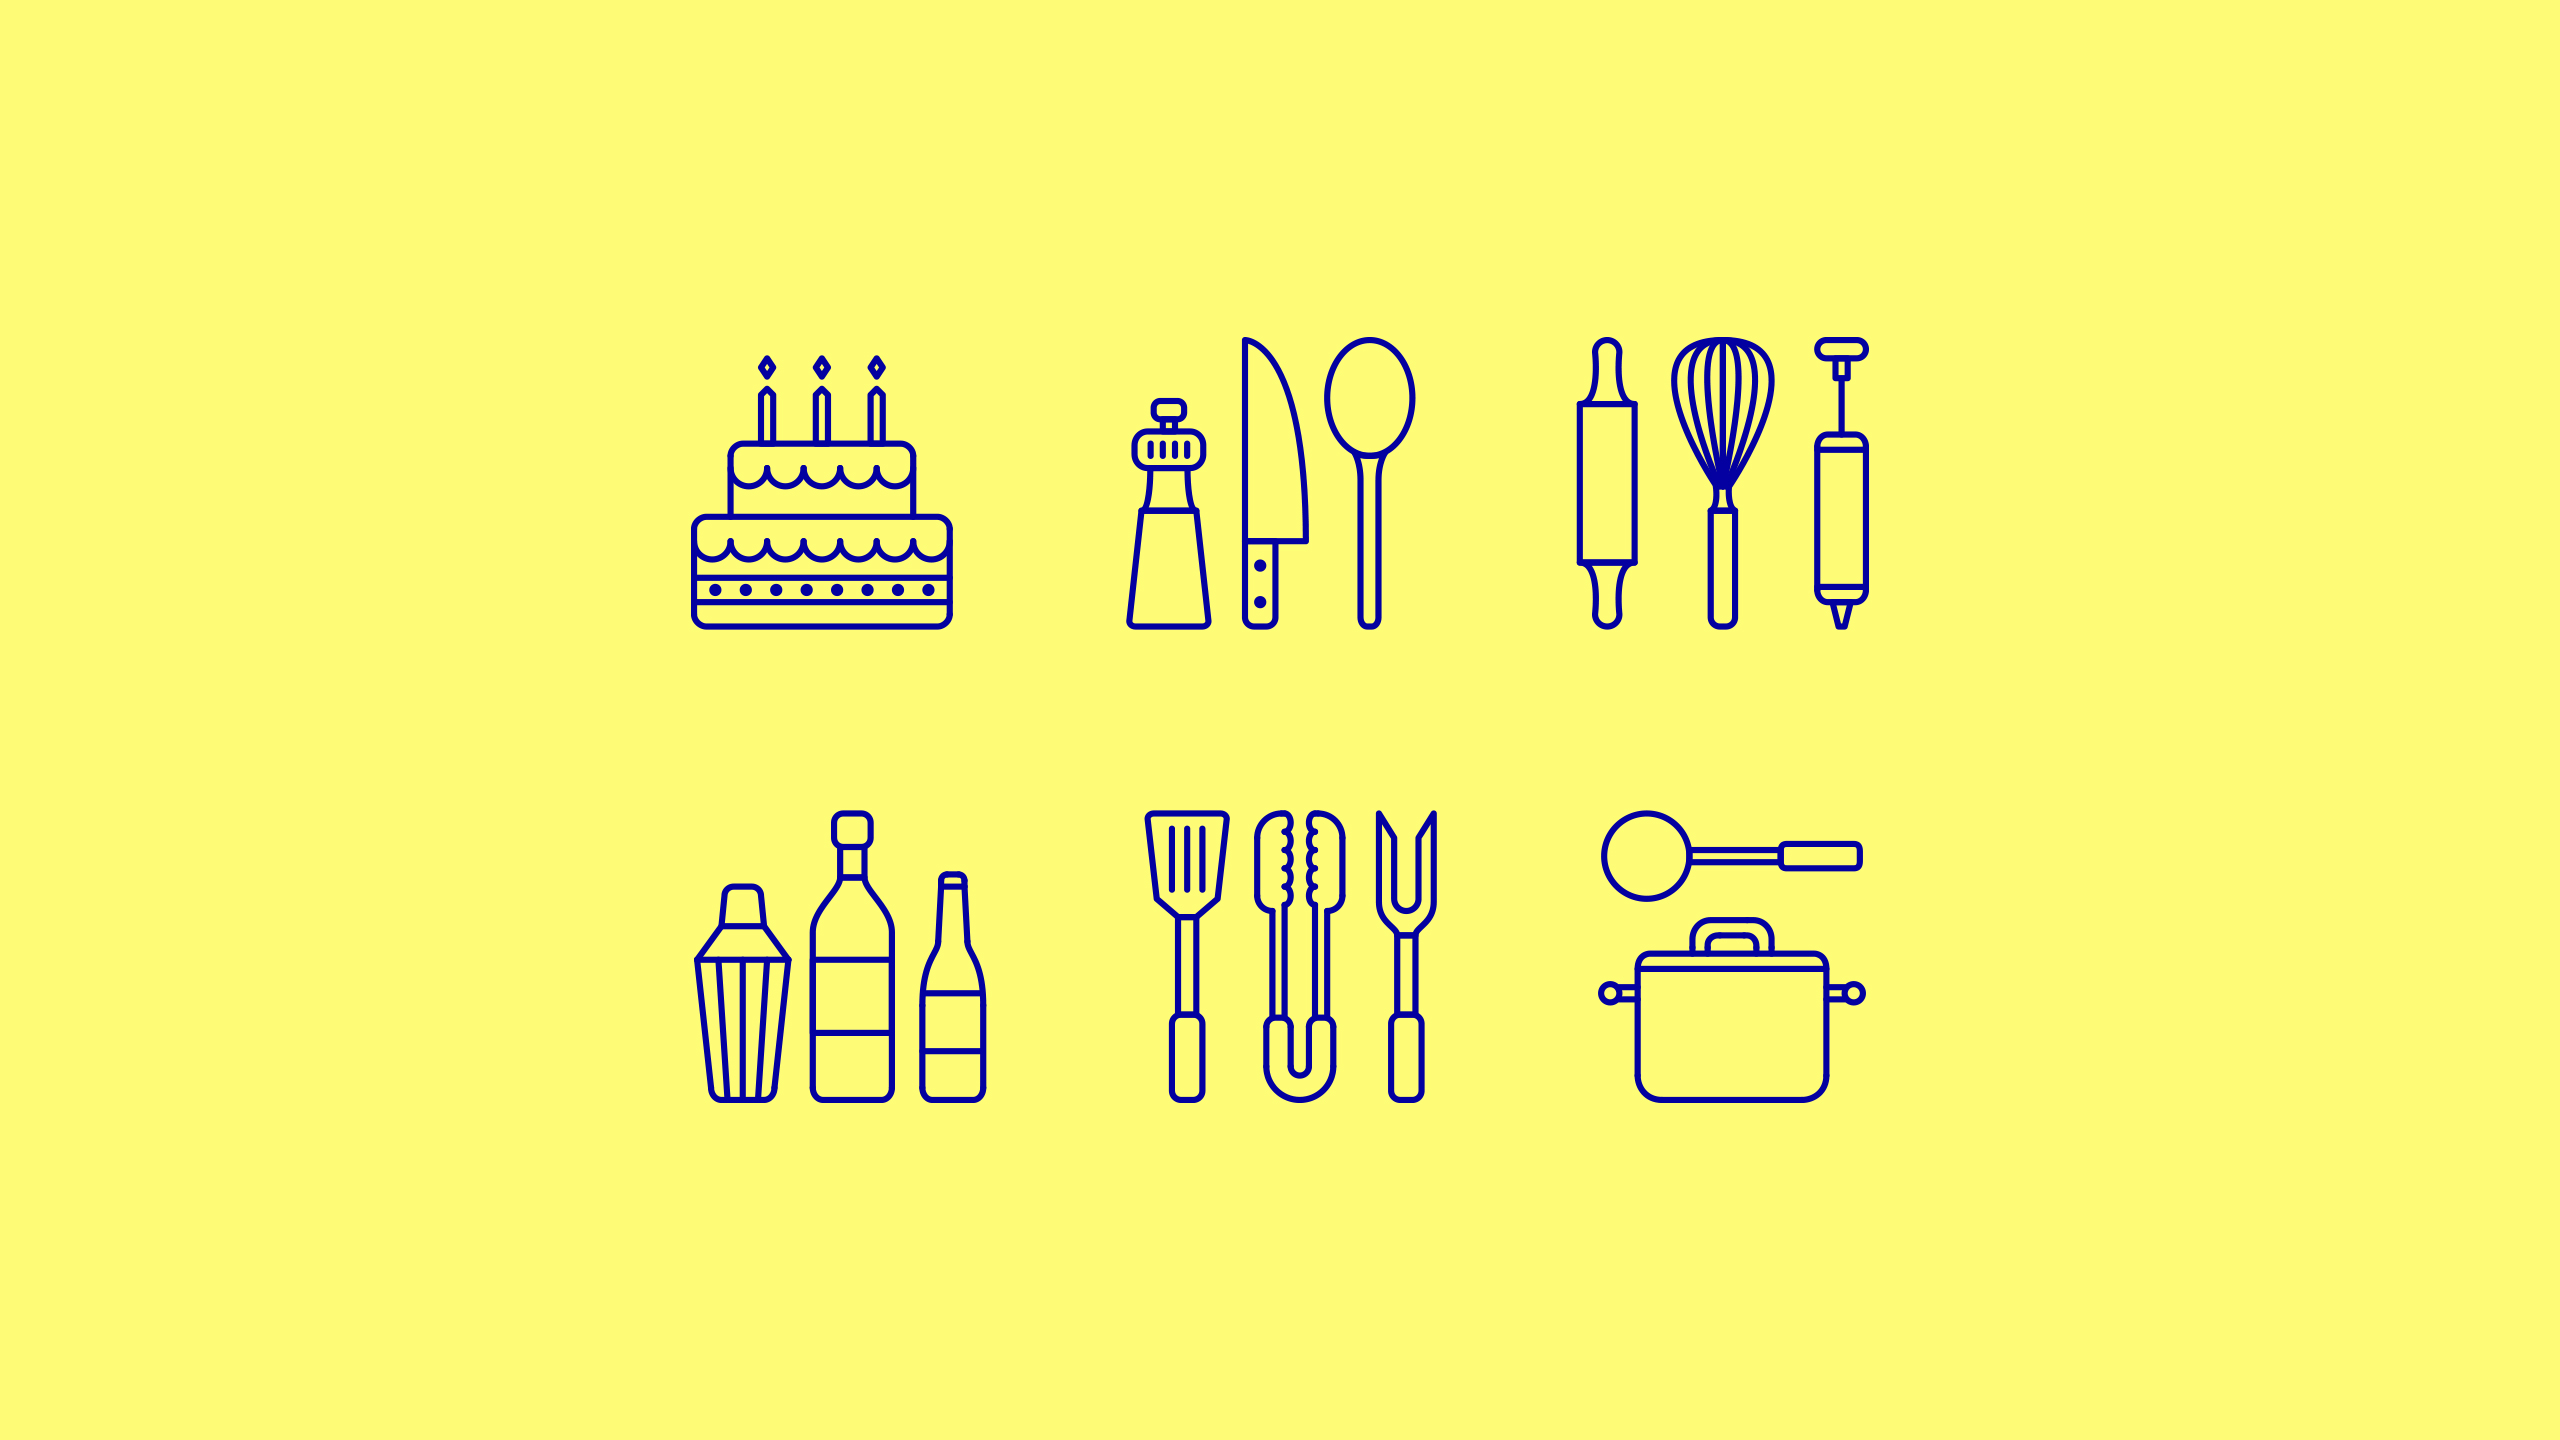 Sanoma Pictogram Design